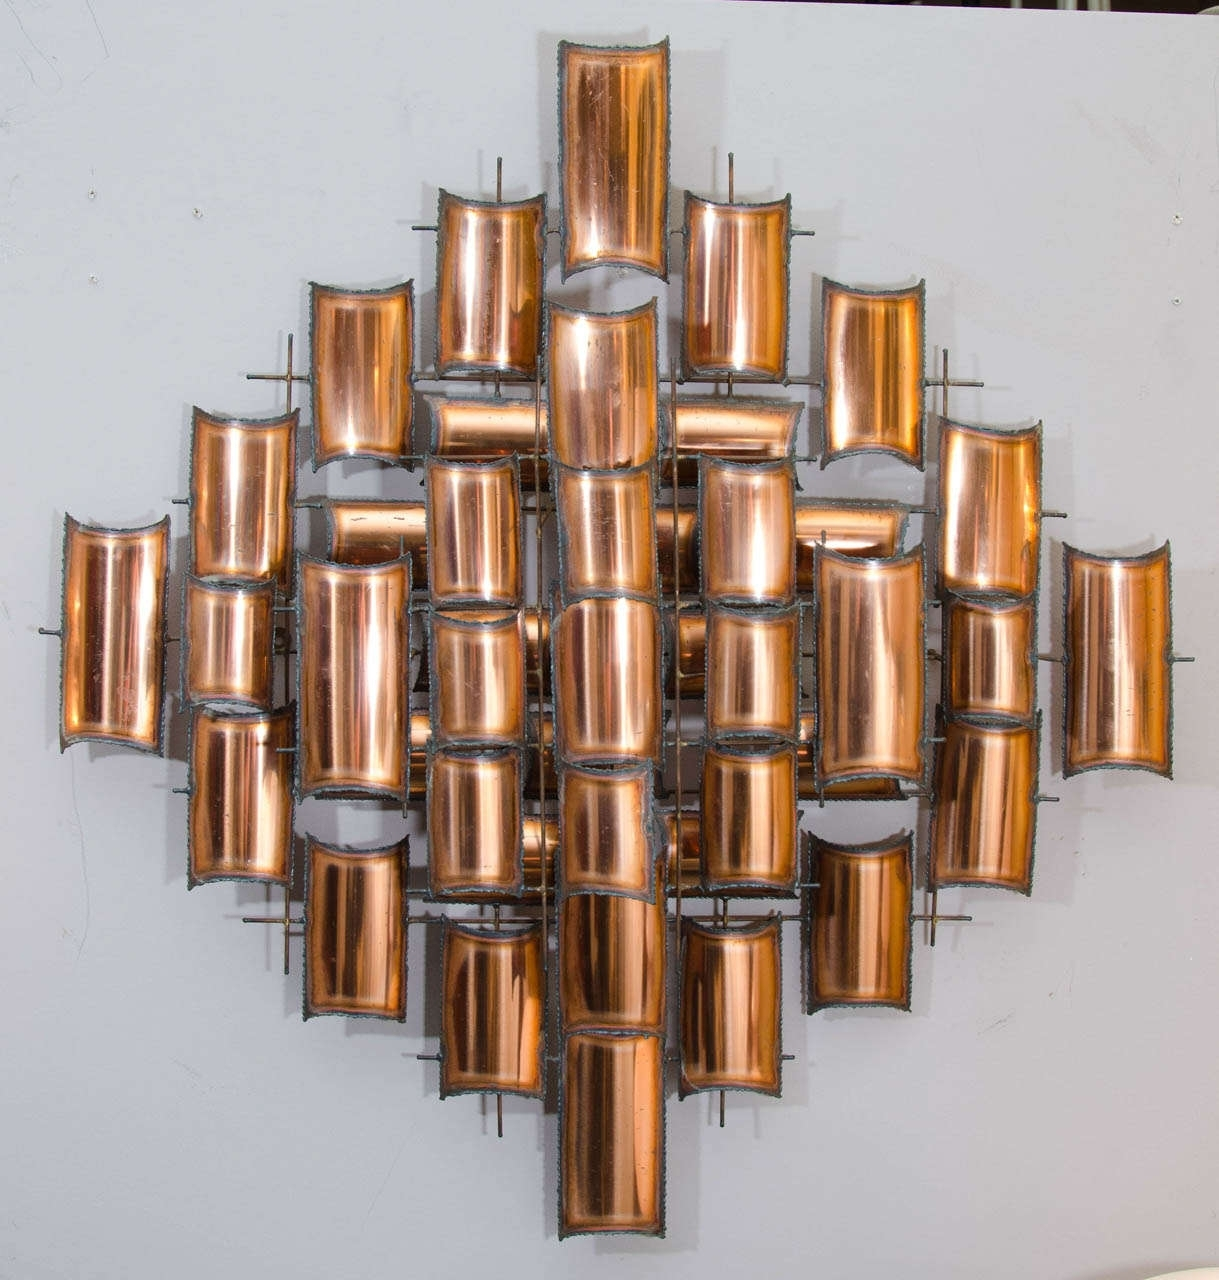 Wall Art Designs: Copper Wall Art Home Decorate Wall Art Abstract Within 2018 Abstract Metal Fish Wall Art (View 13 of 20)